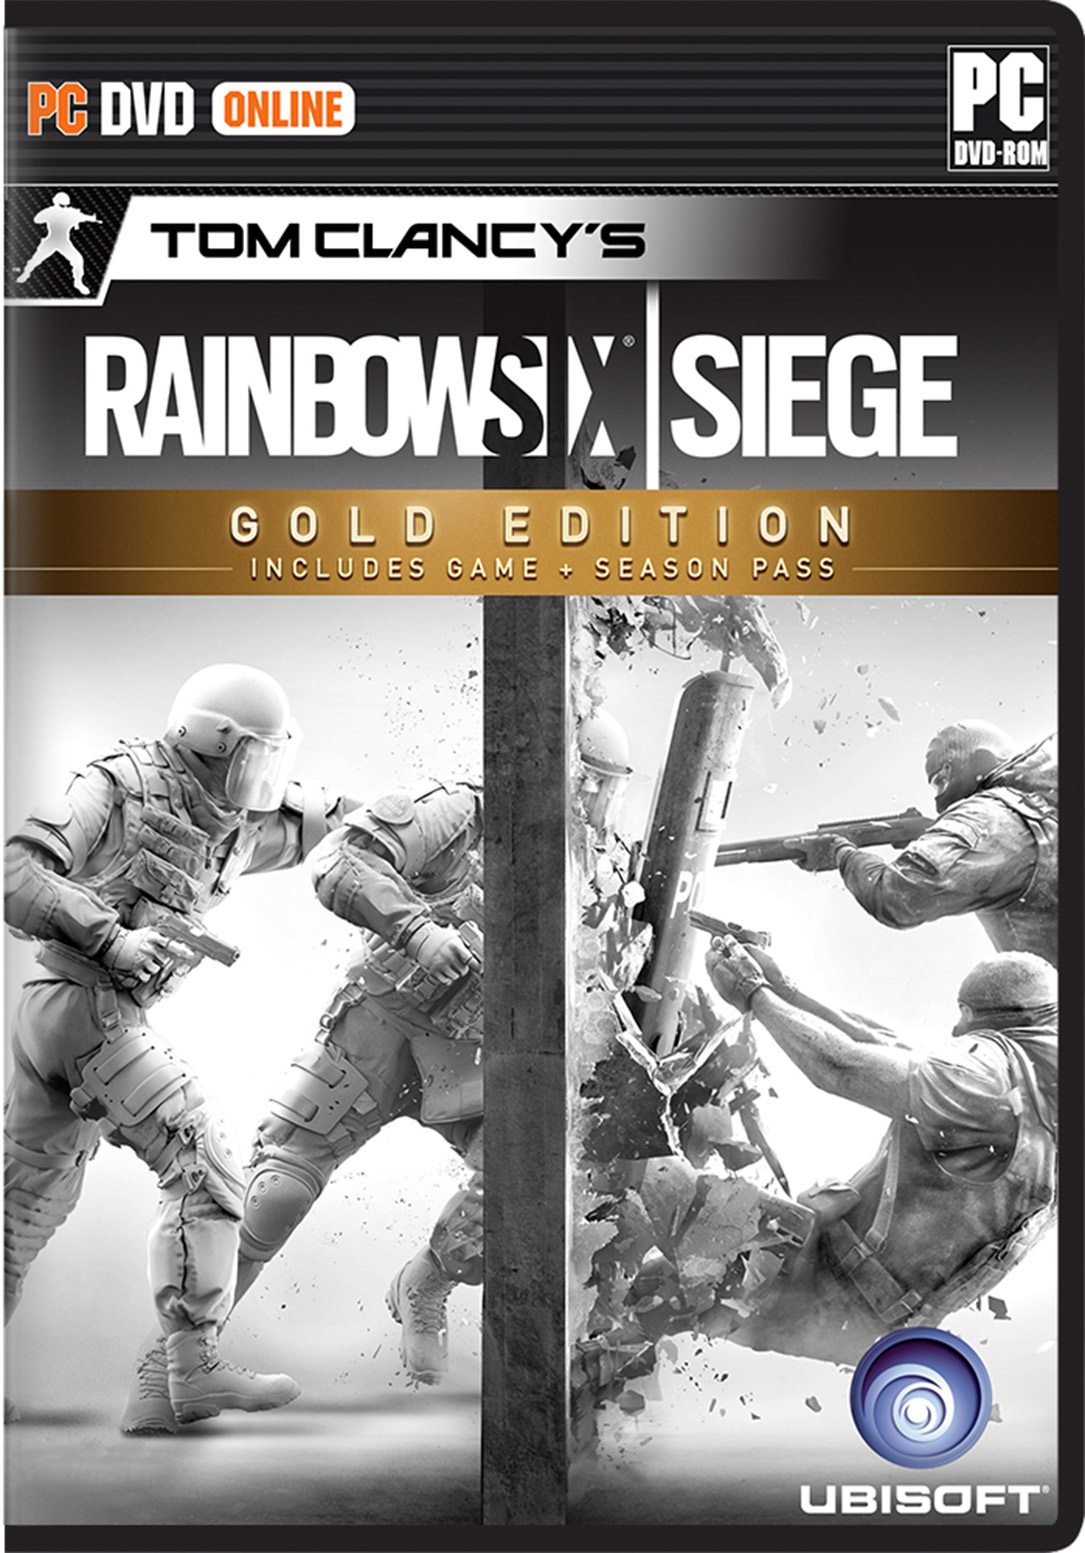 Tom Clancy's Rainbow Six Siege Gold Edition PC Game